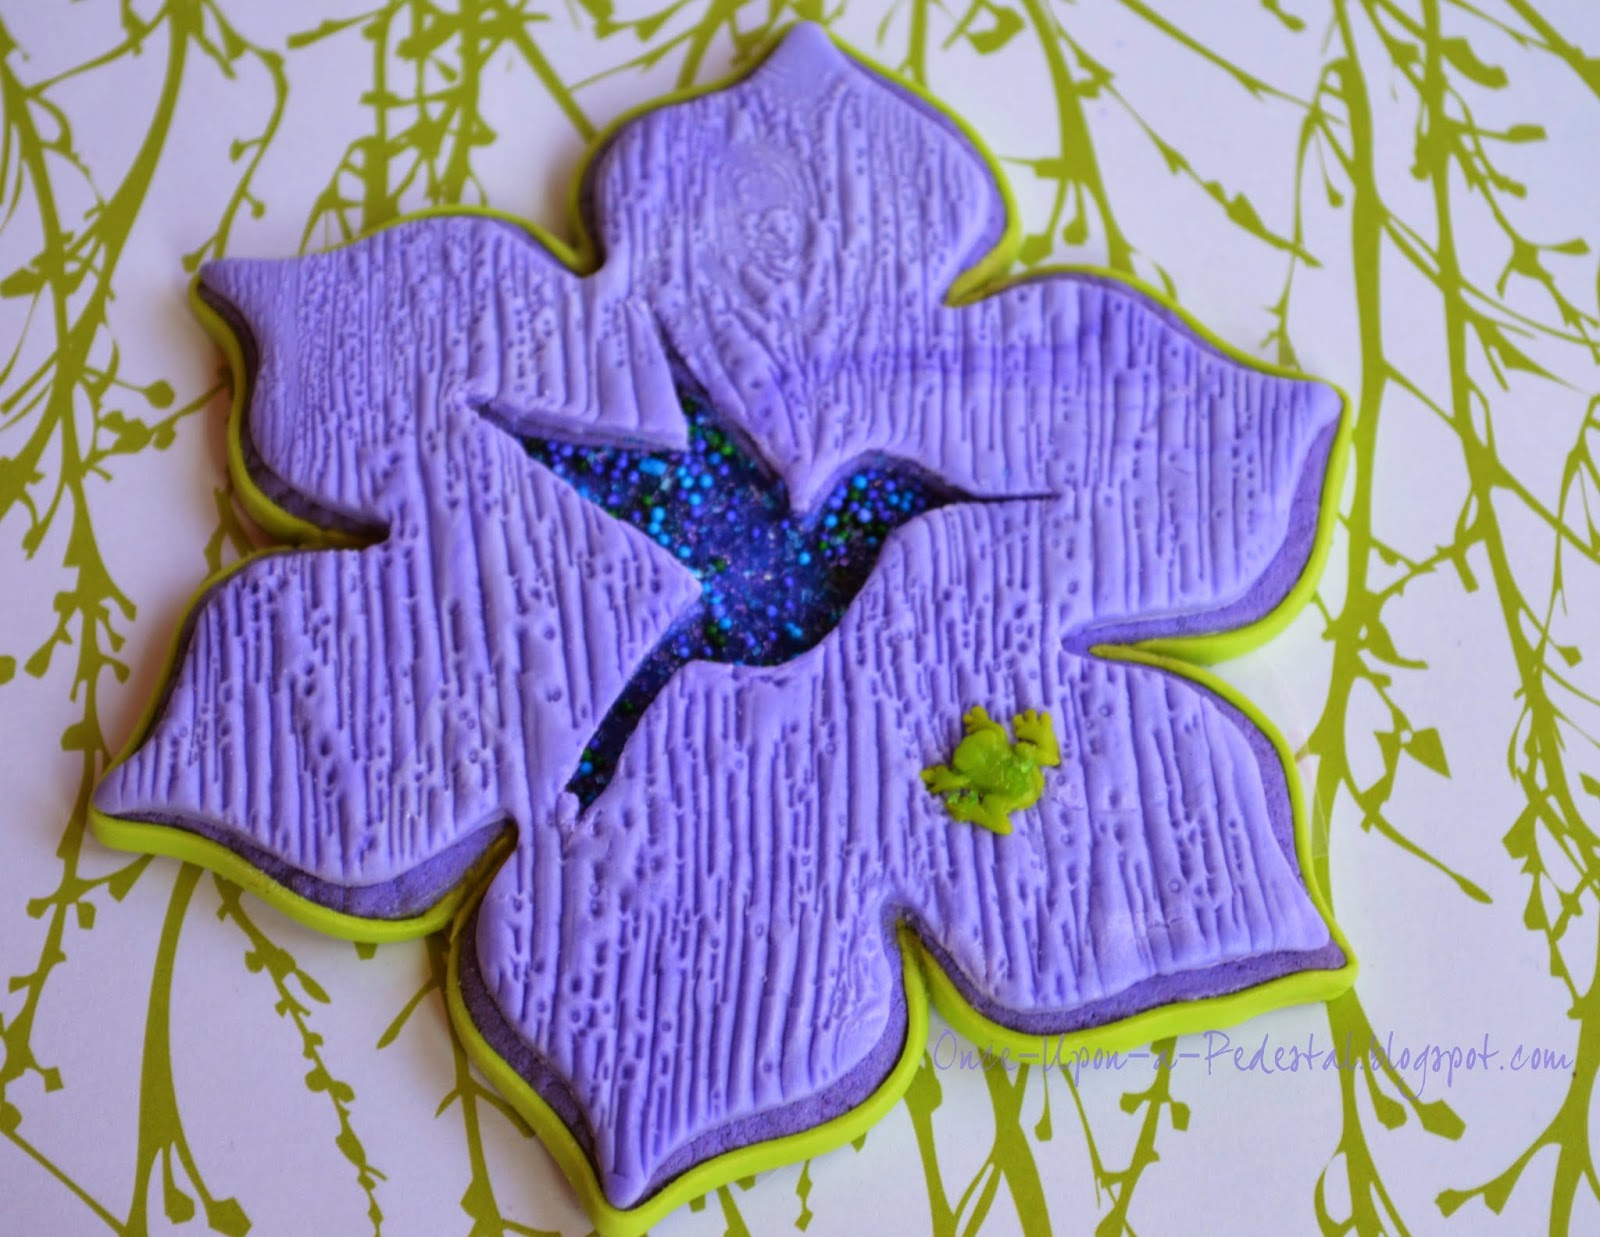 wood-texture-cookies-hummingbird-frog-cookie-con-salt-lake-city-utah-deborah-stauch